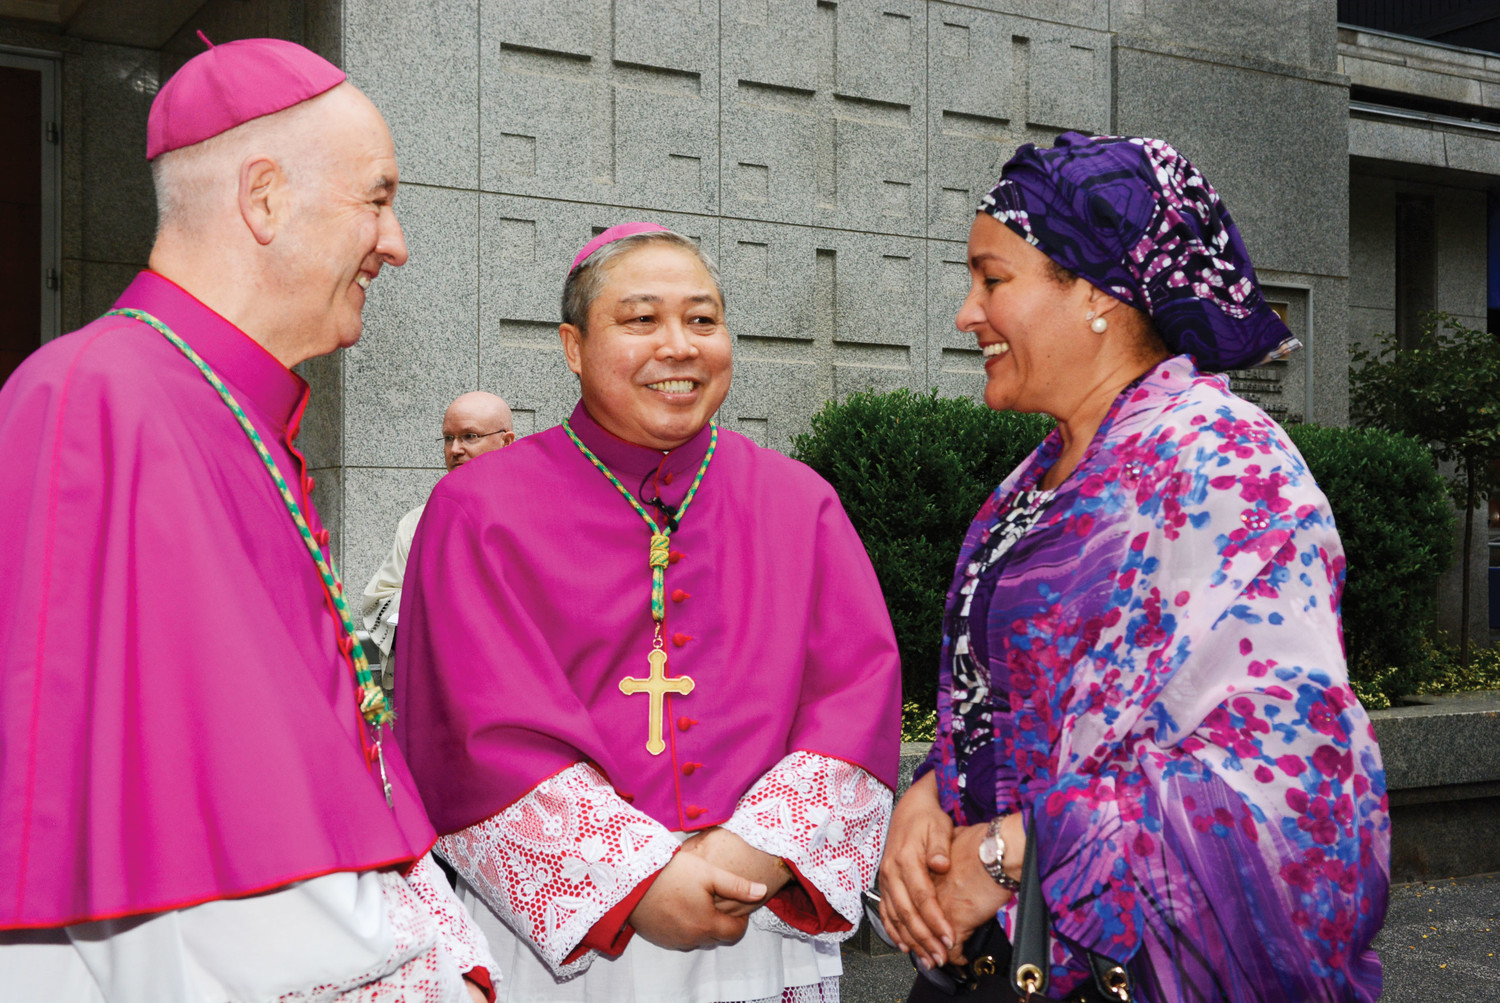 rchbishop Luis Castro Quiroga of Tunja, Colombia, far left, and Archbishop Bernardito Auza, apostolic nuncio of the Holy See to the United Nations, talk with Amina J. Mohammed, current Deputy Secretary-General of the United Nations and a former Minister of Environment of Nigeria, before the Prayer Service on the Vigil of the Opening of the 73rd Session of the United Nations General Assembly Sept. 17 at Holy Family Church in Manhattan.